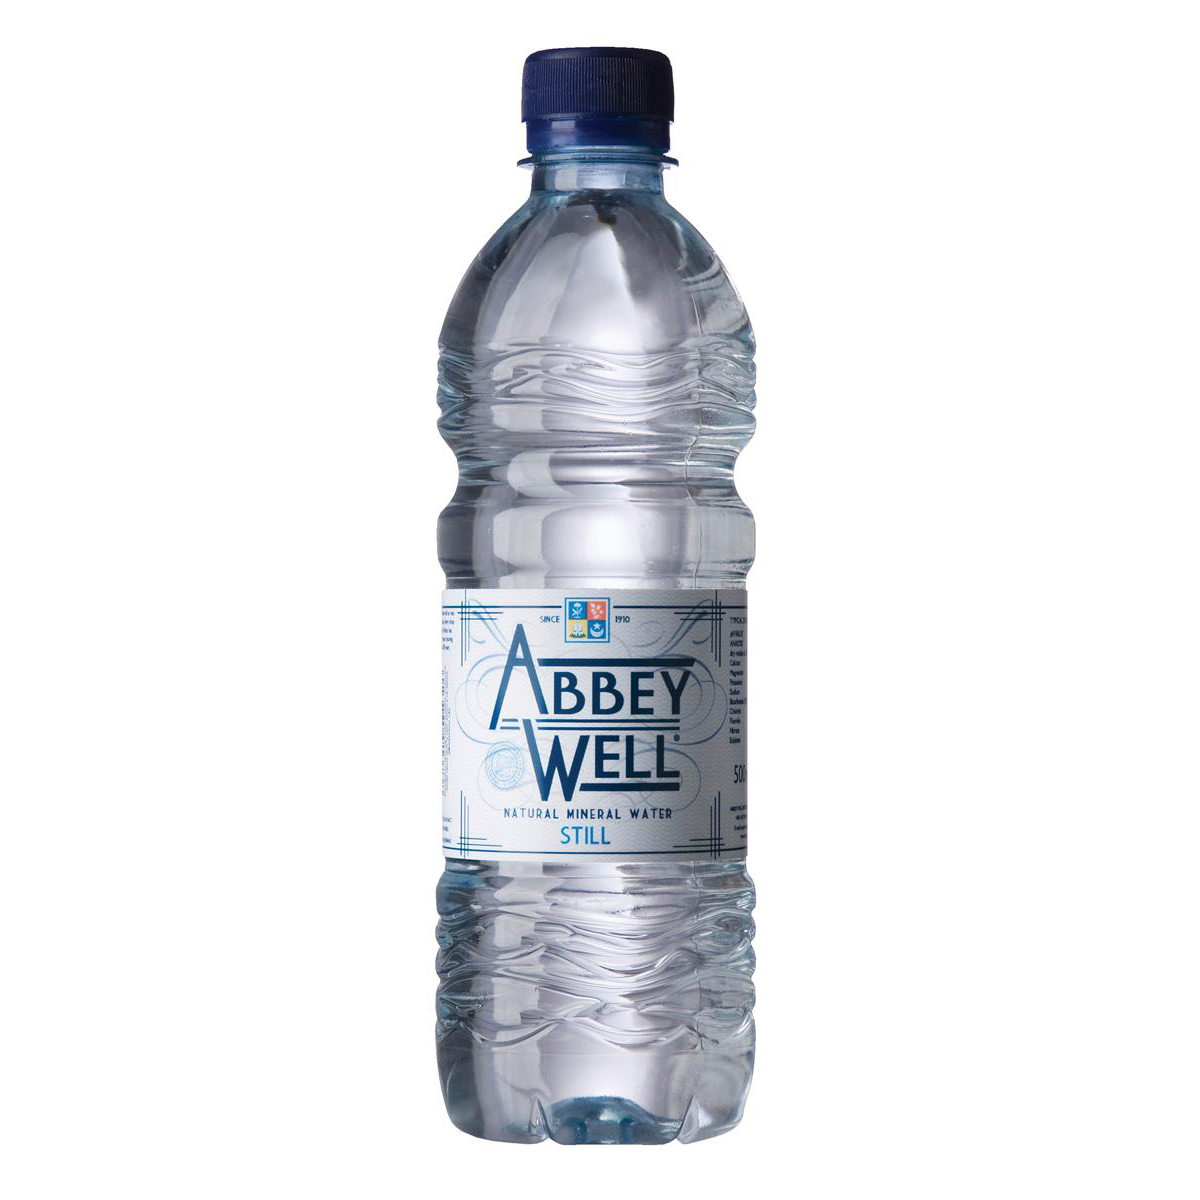 Abbey Well Natural Mineral Water Bottle Plastic Still 500ml Ref A03086 Pack 24